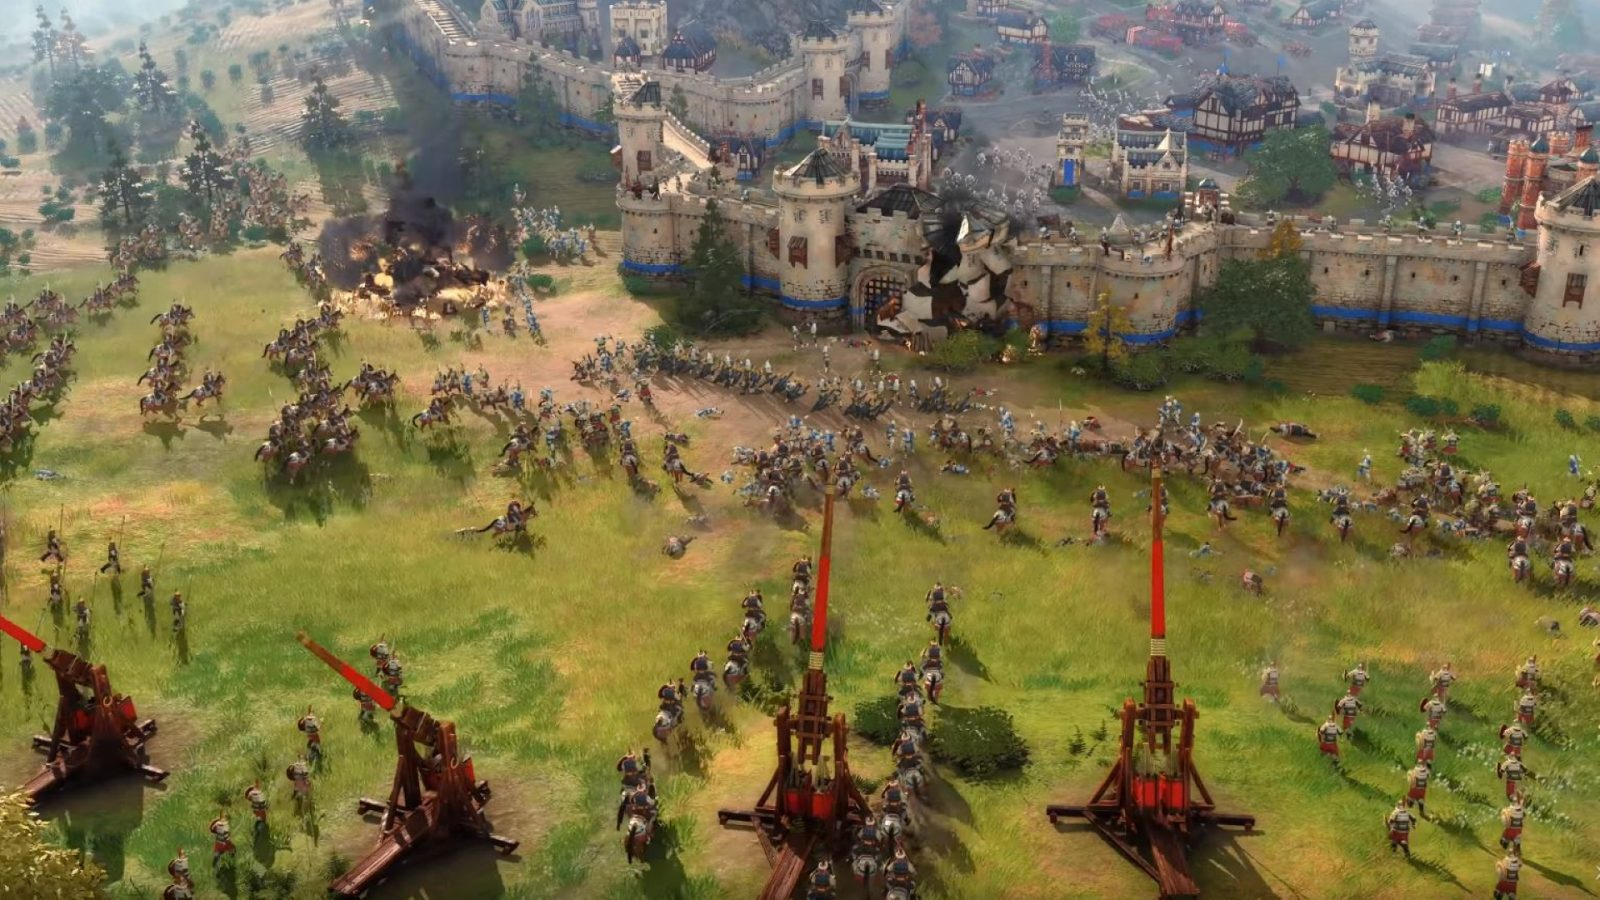 Age of Empires 4 has fewer civs than Age of Empires 2